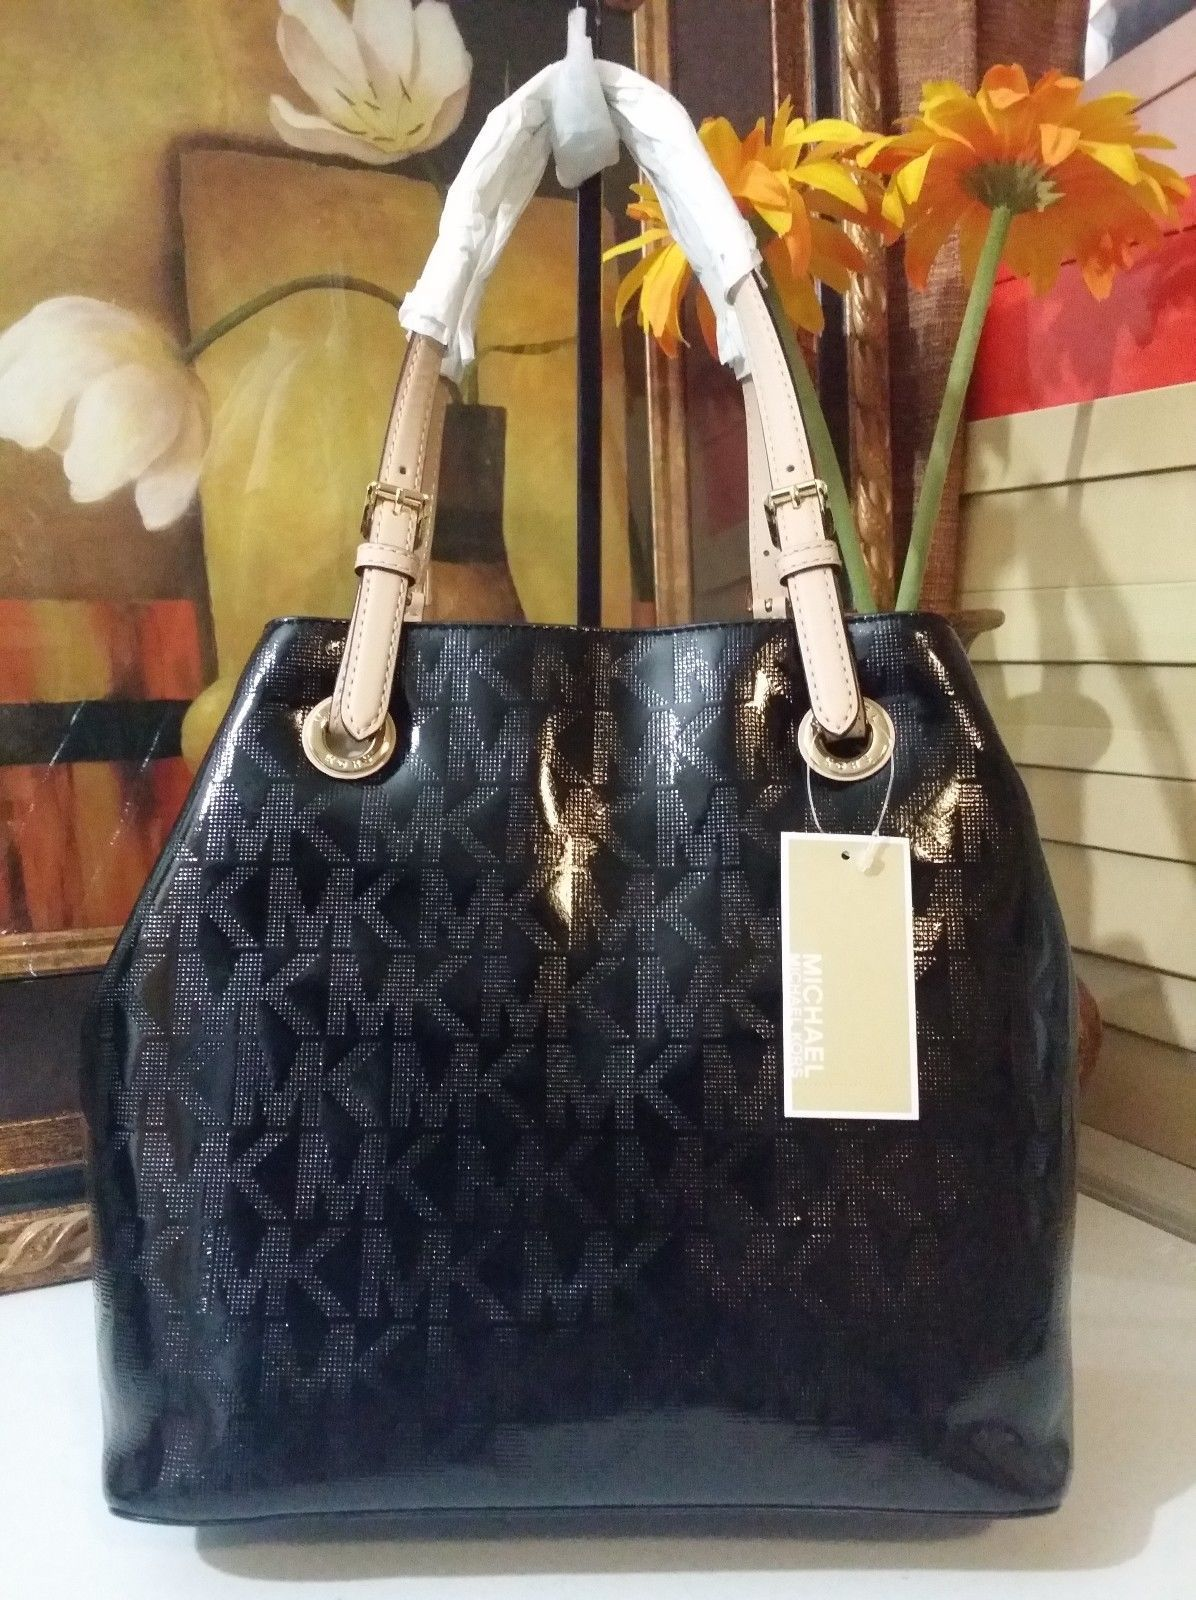 NWT Michael Kors Jet Set Grab Bag Tote Bag MK Sig Patent Leather Black MSRP $268